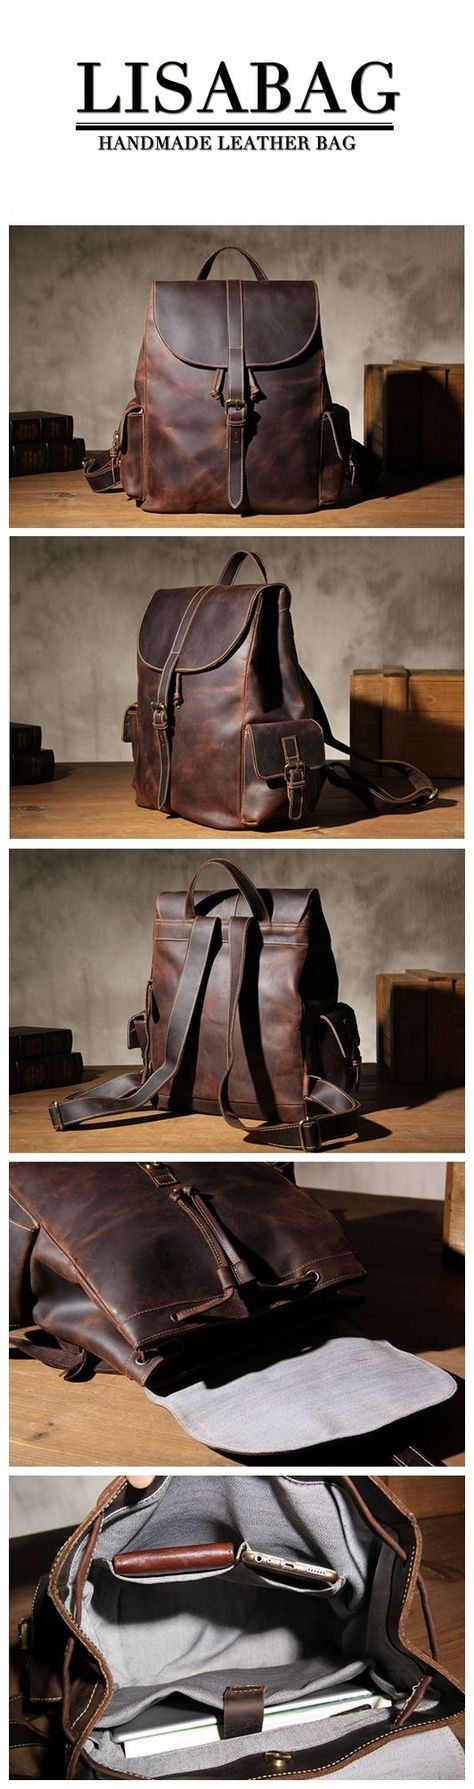 94f356d8d9 Vintage Full Grain Leather Travel Backpack Laptop Rucksack Cool Backpack  for Men YS09 - Vintage Brown